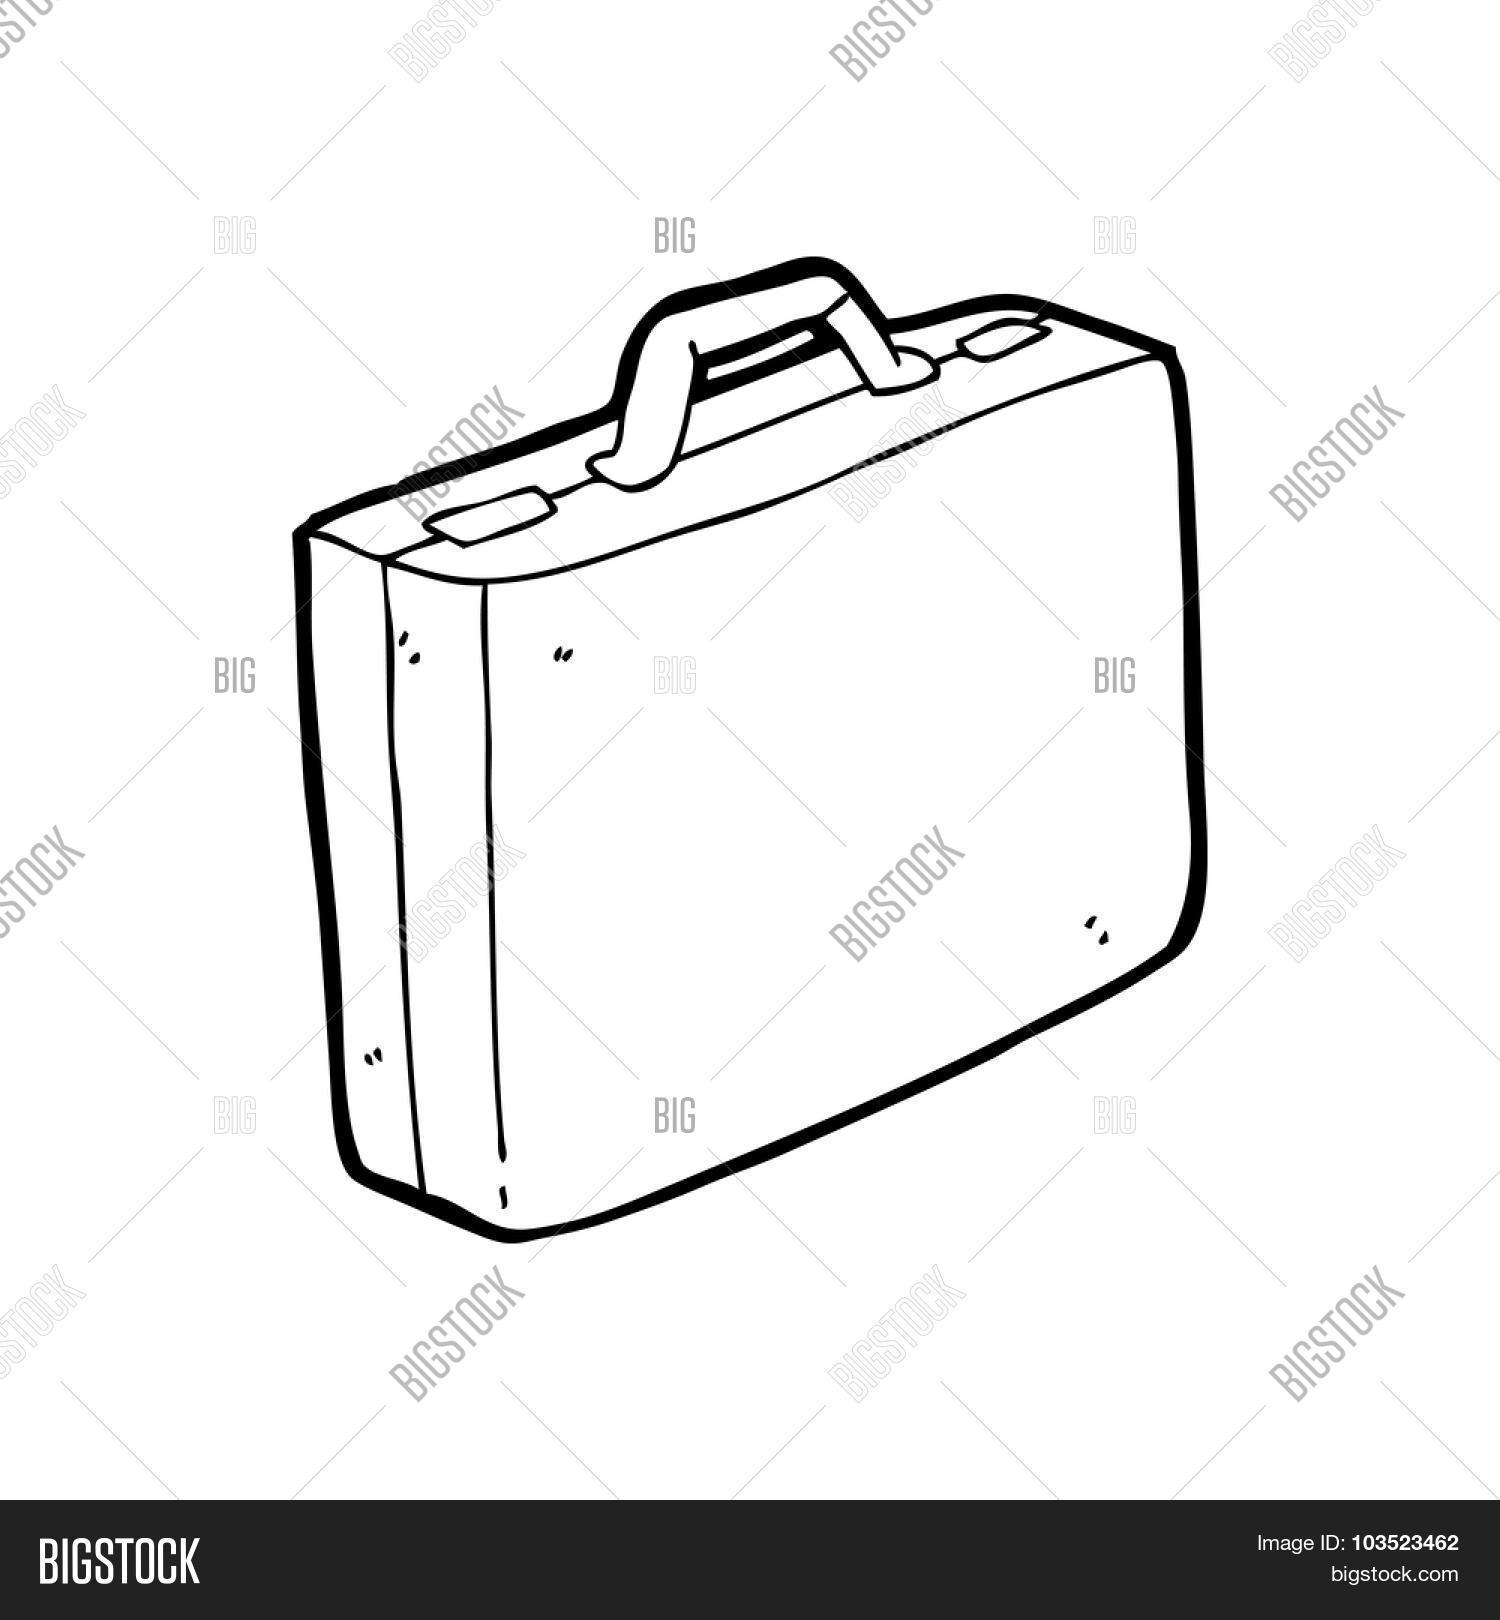 Simple Black And White Line Art : Simple black white line drawing vector photo bigstock